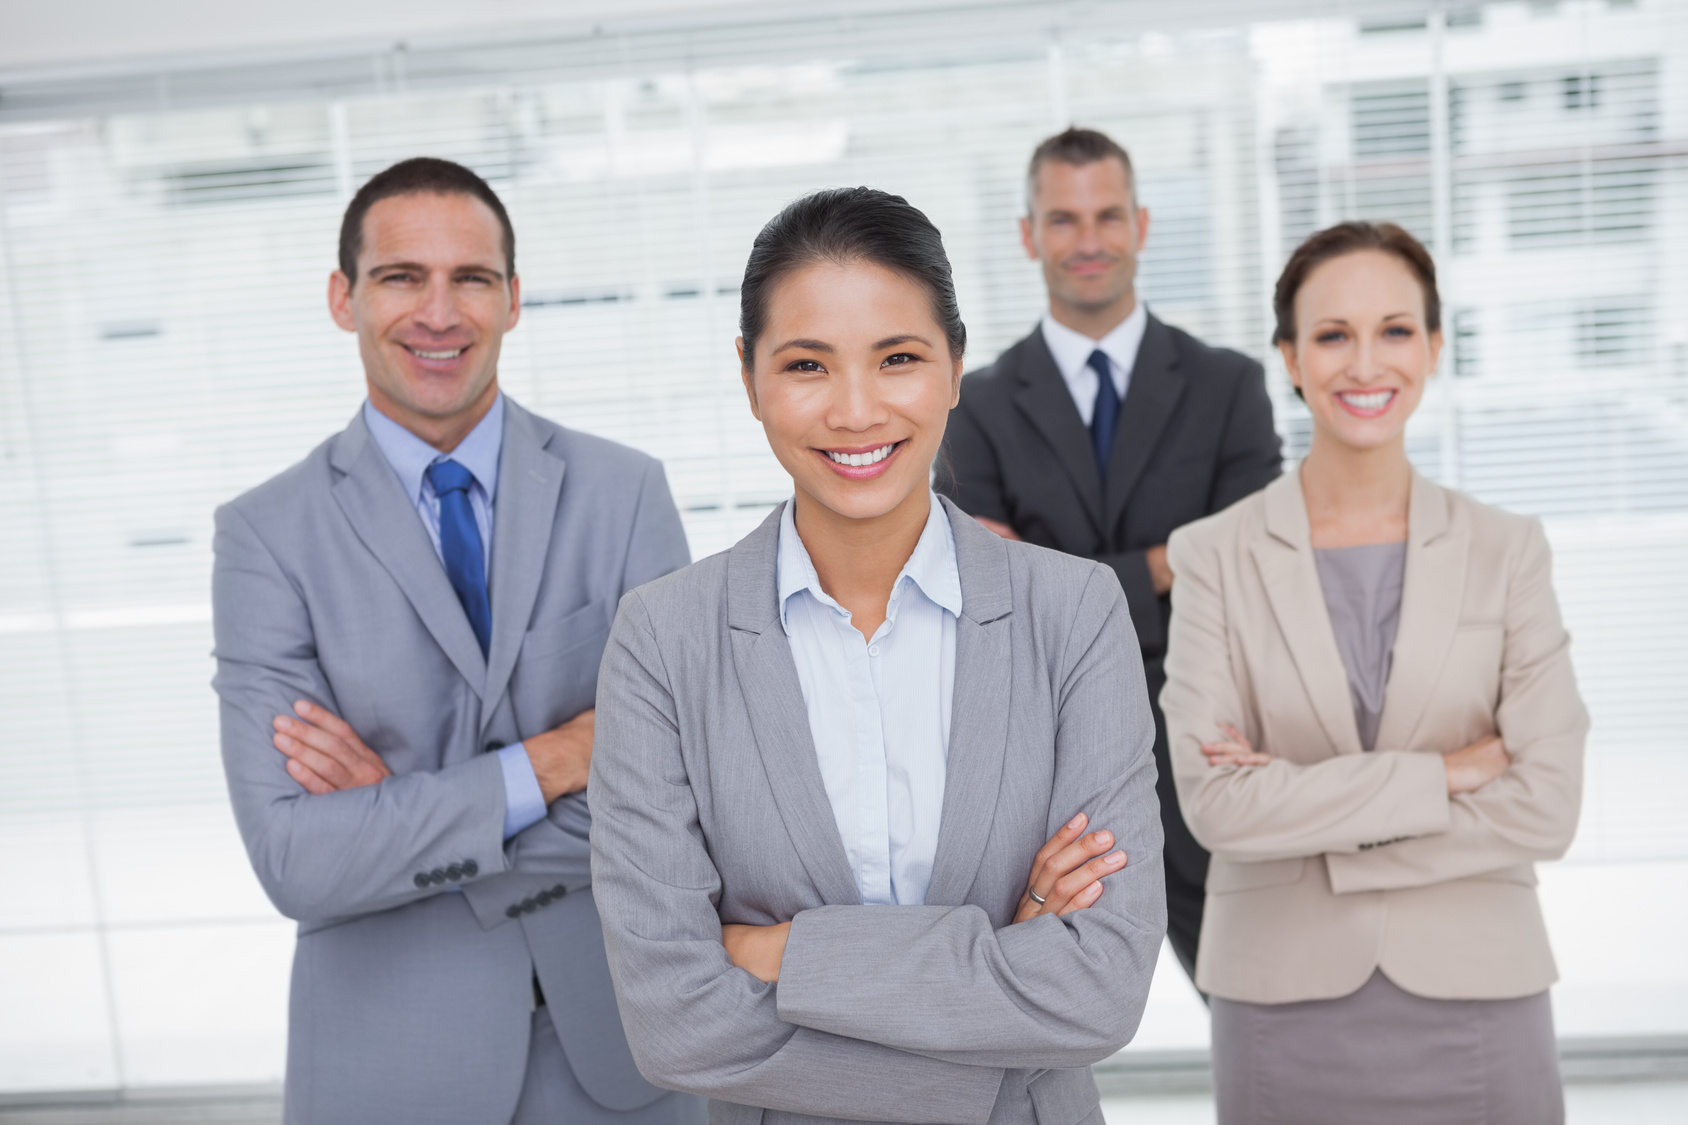 Cheerful work team posing crossing arms in bright office